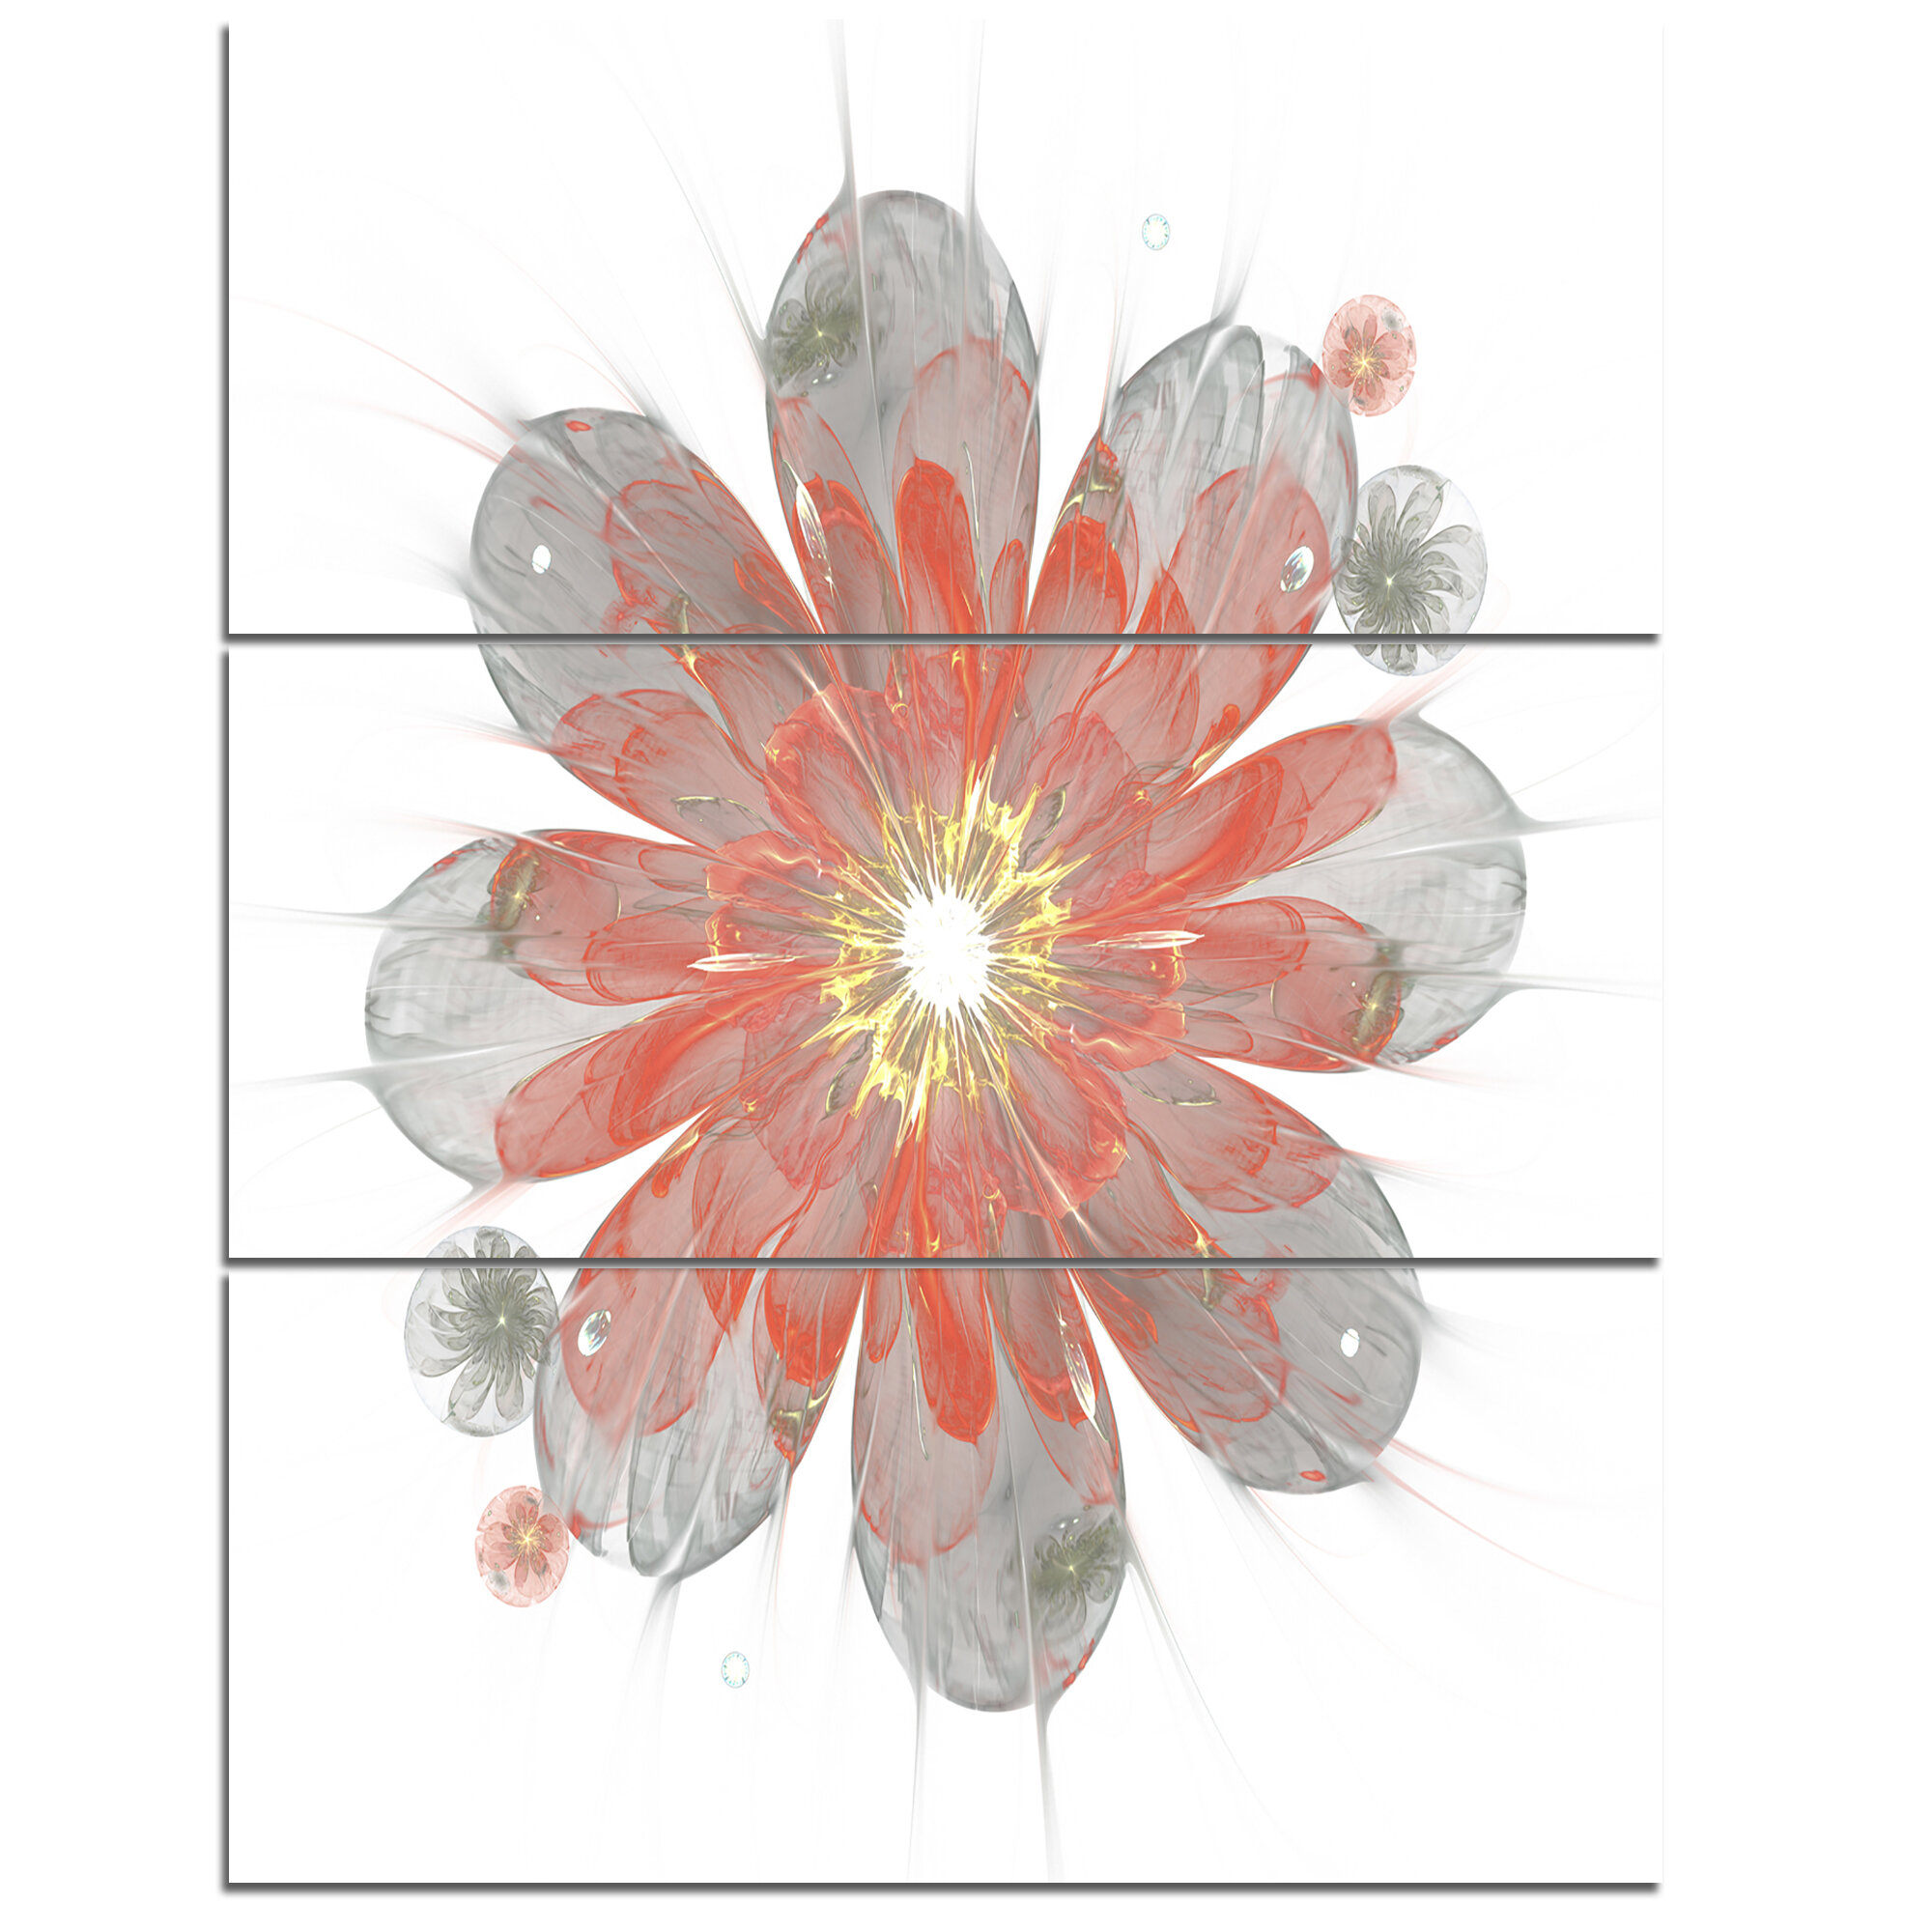 Designart Simple Red And White Fractal Flower 3 Piece Graphic Art On Wrapped Canvas Set Wayfair